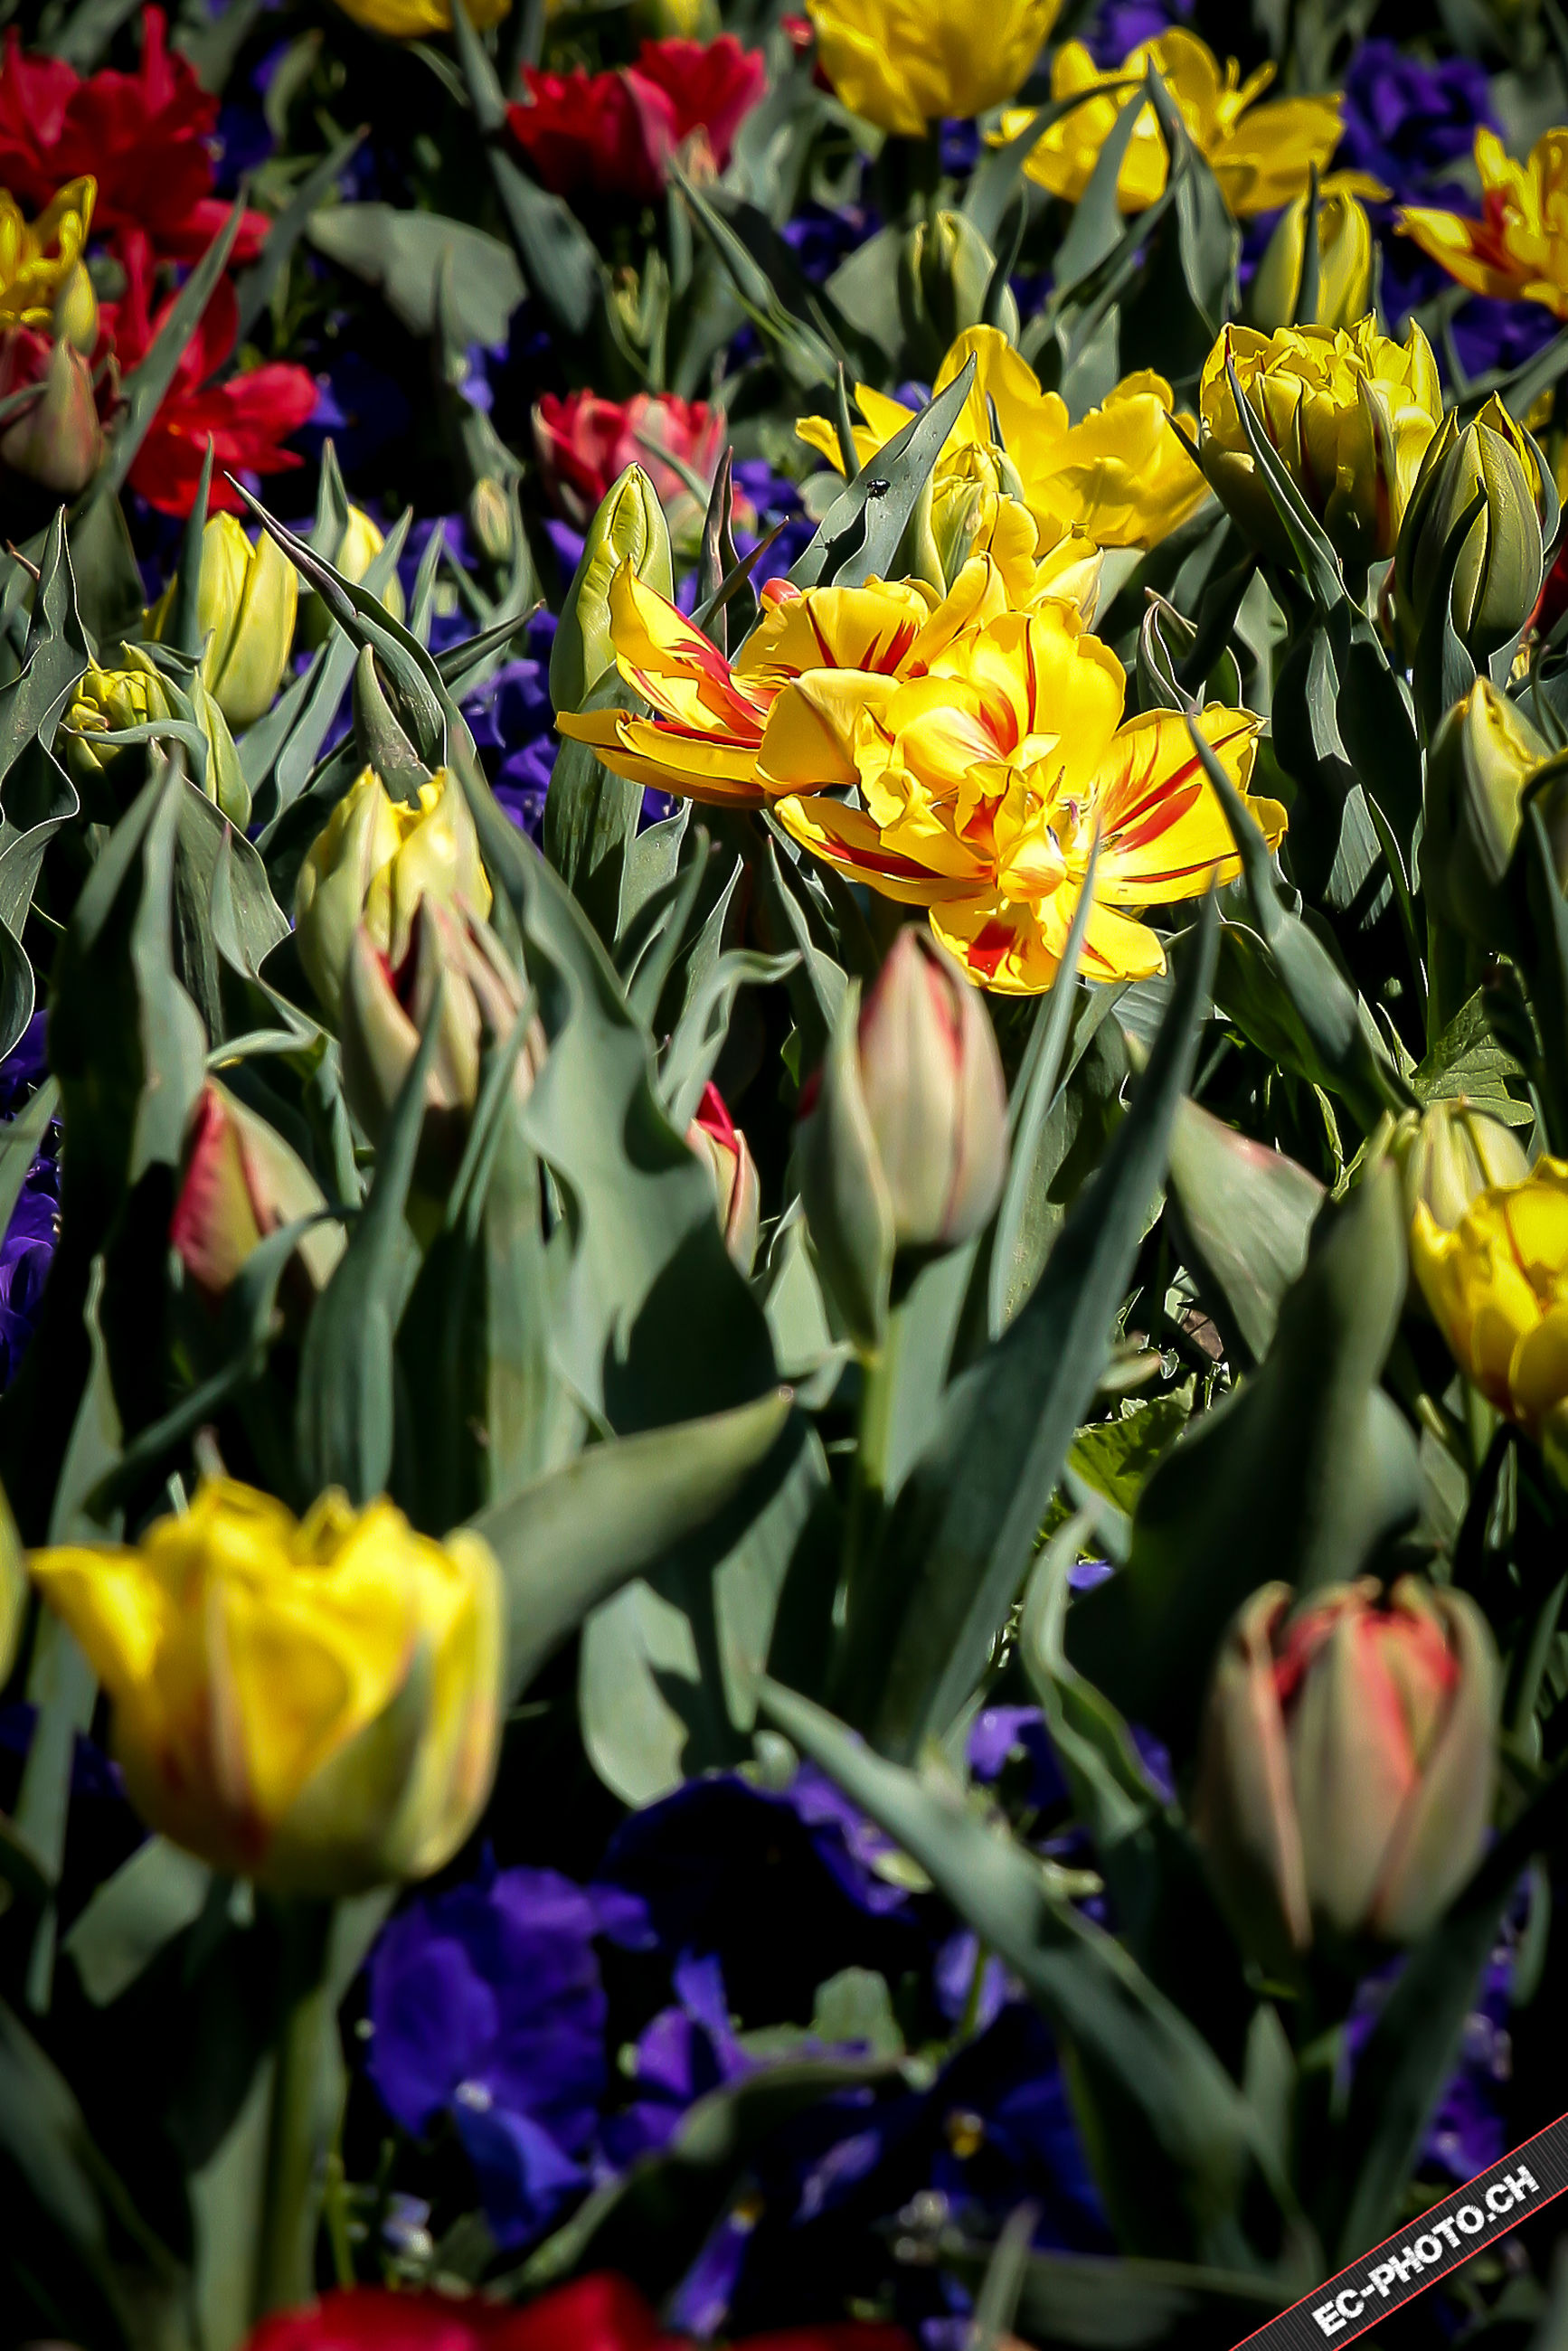 flower, freshness, petal, fragility, abundance, growth, beauty in nature, full frame, flower head, yellow, backgrounds, plant, nature, multi colored, blooming, close-up, tulip, leaf, variation, day